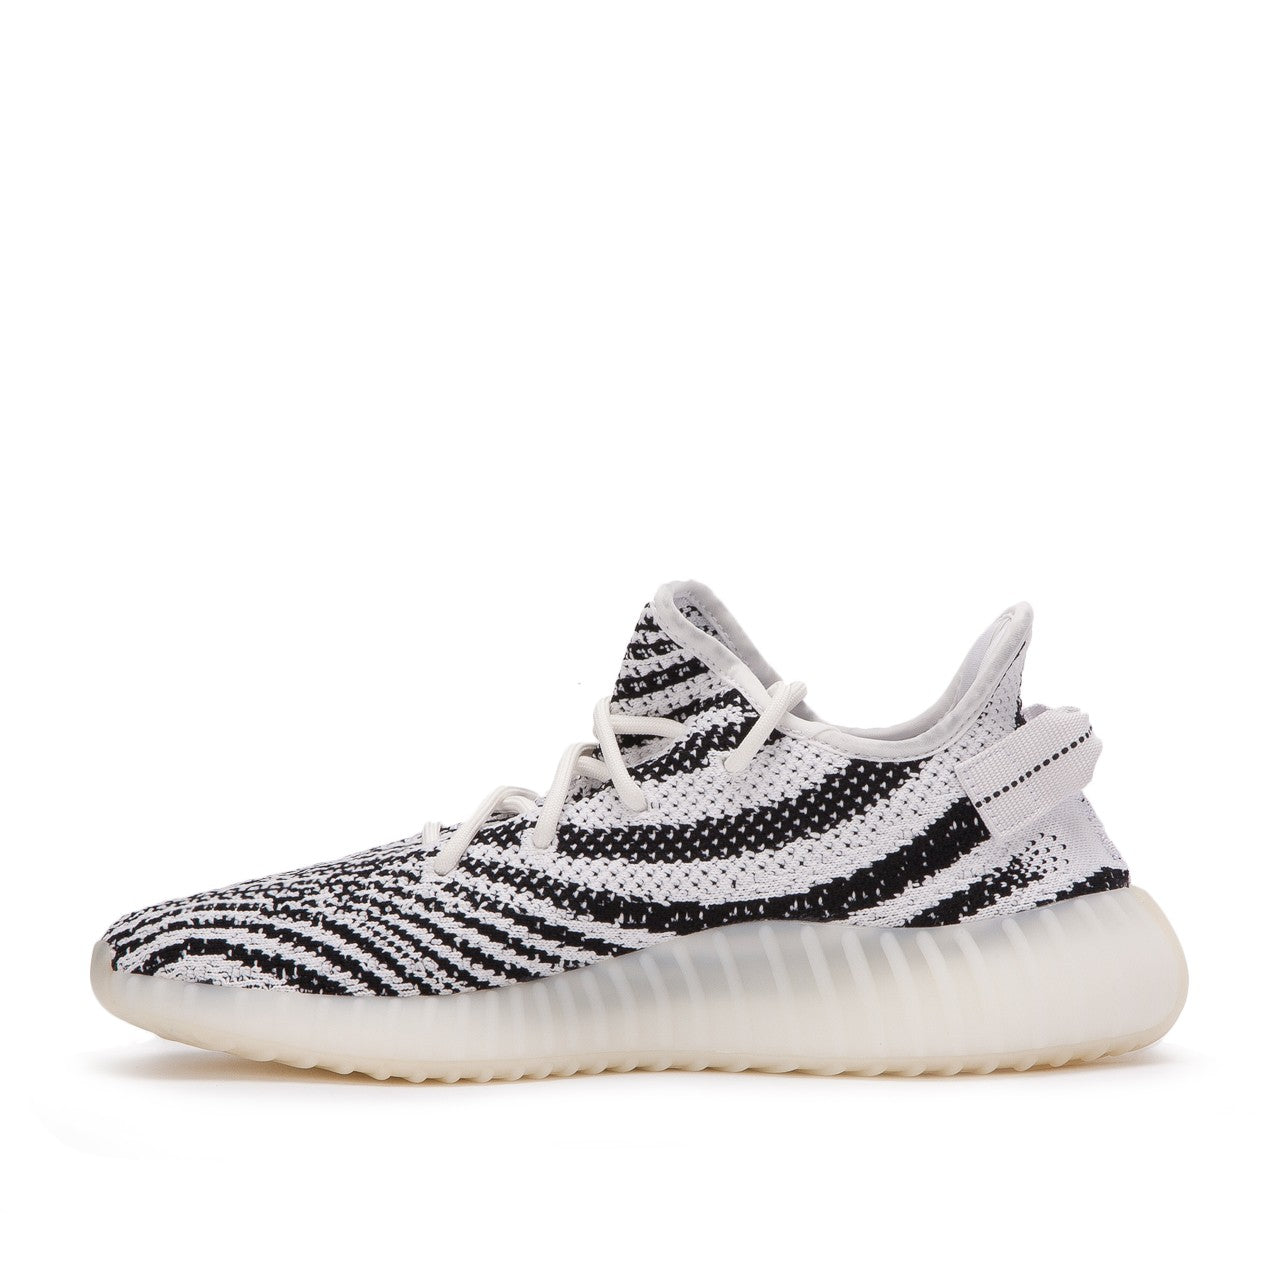 newest 2fbd4 fa038 Adidas Yeezy Boost 350 V2 Zebra 2018 – Staple Project